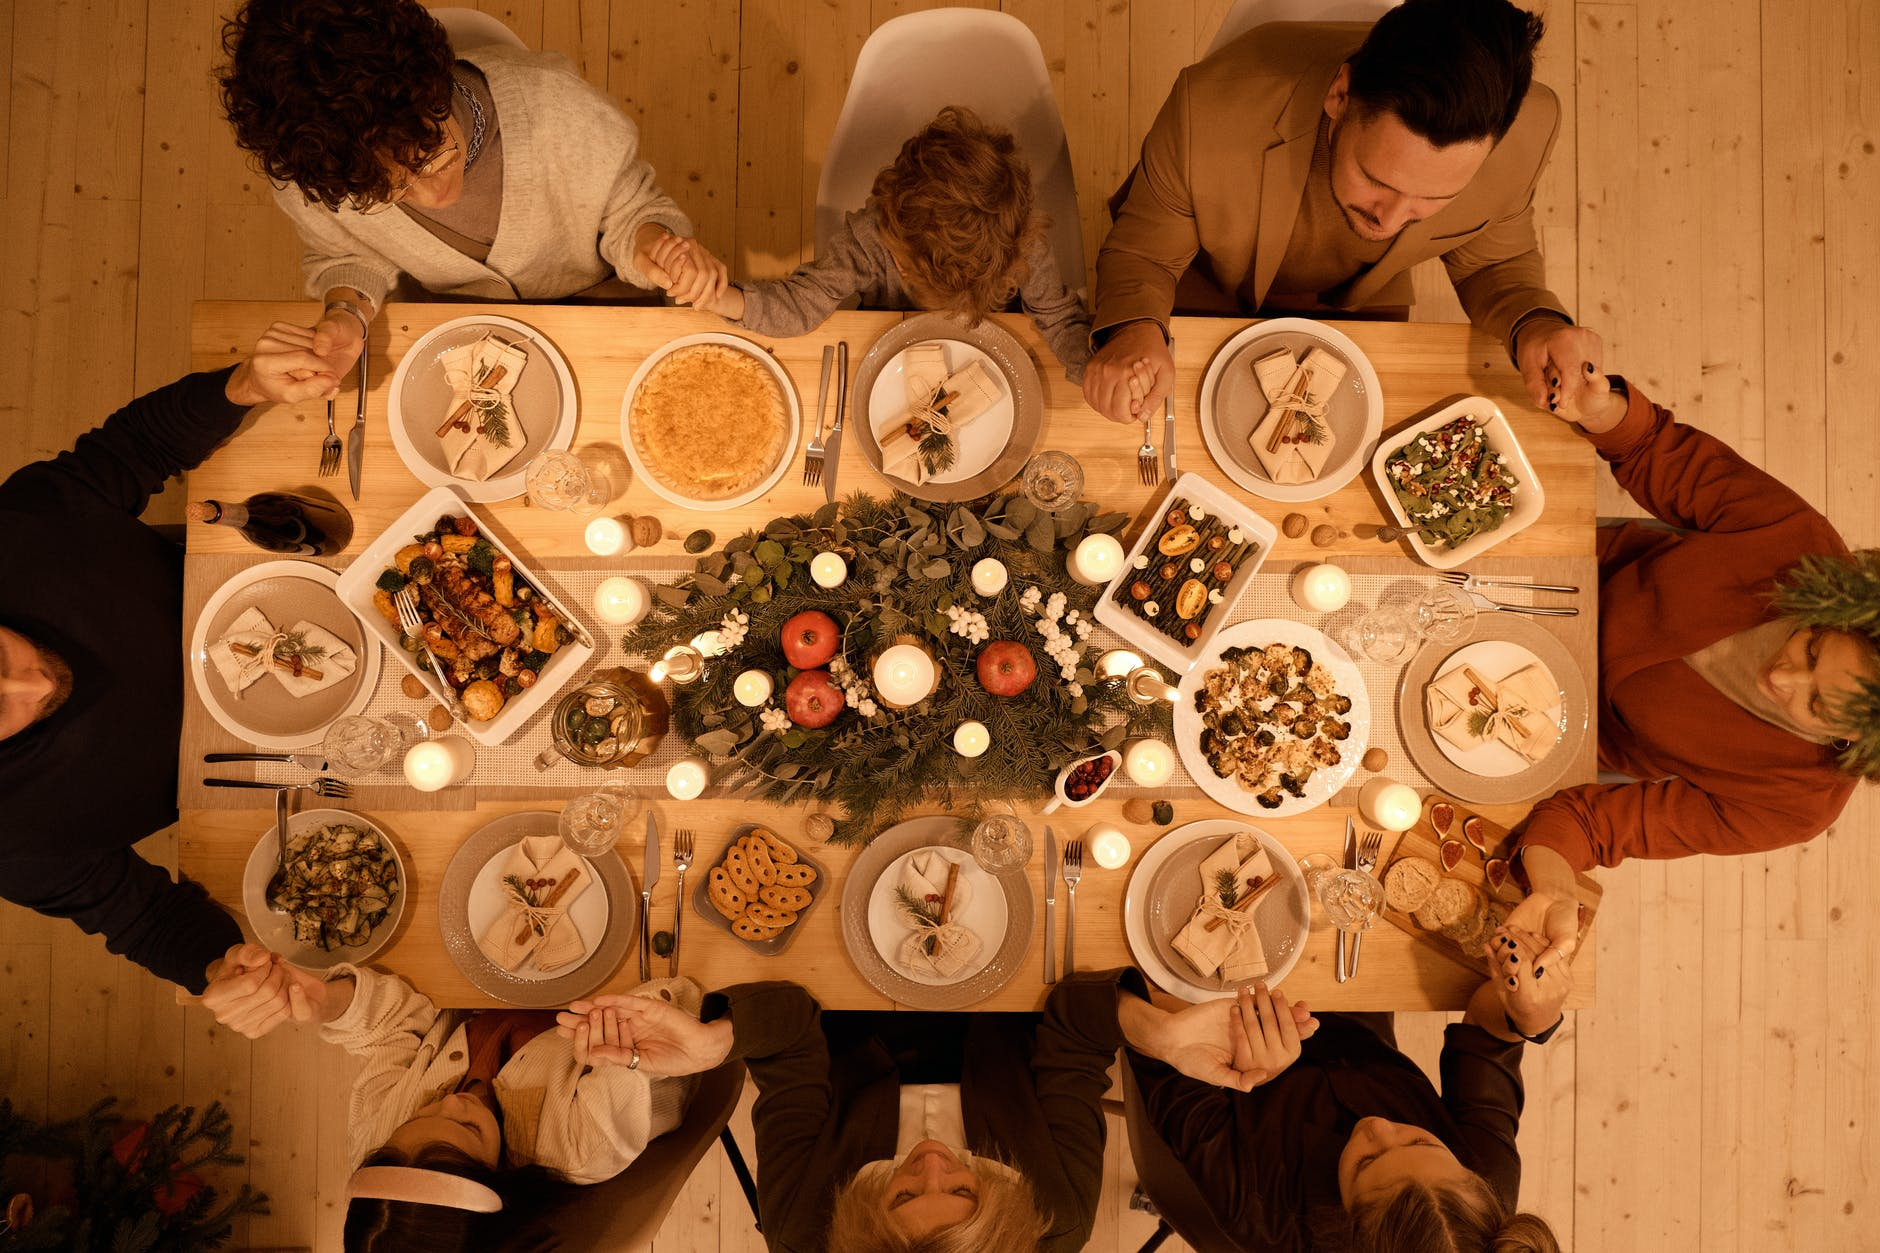 A group of people pray over dinner at a table full of food.